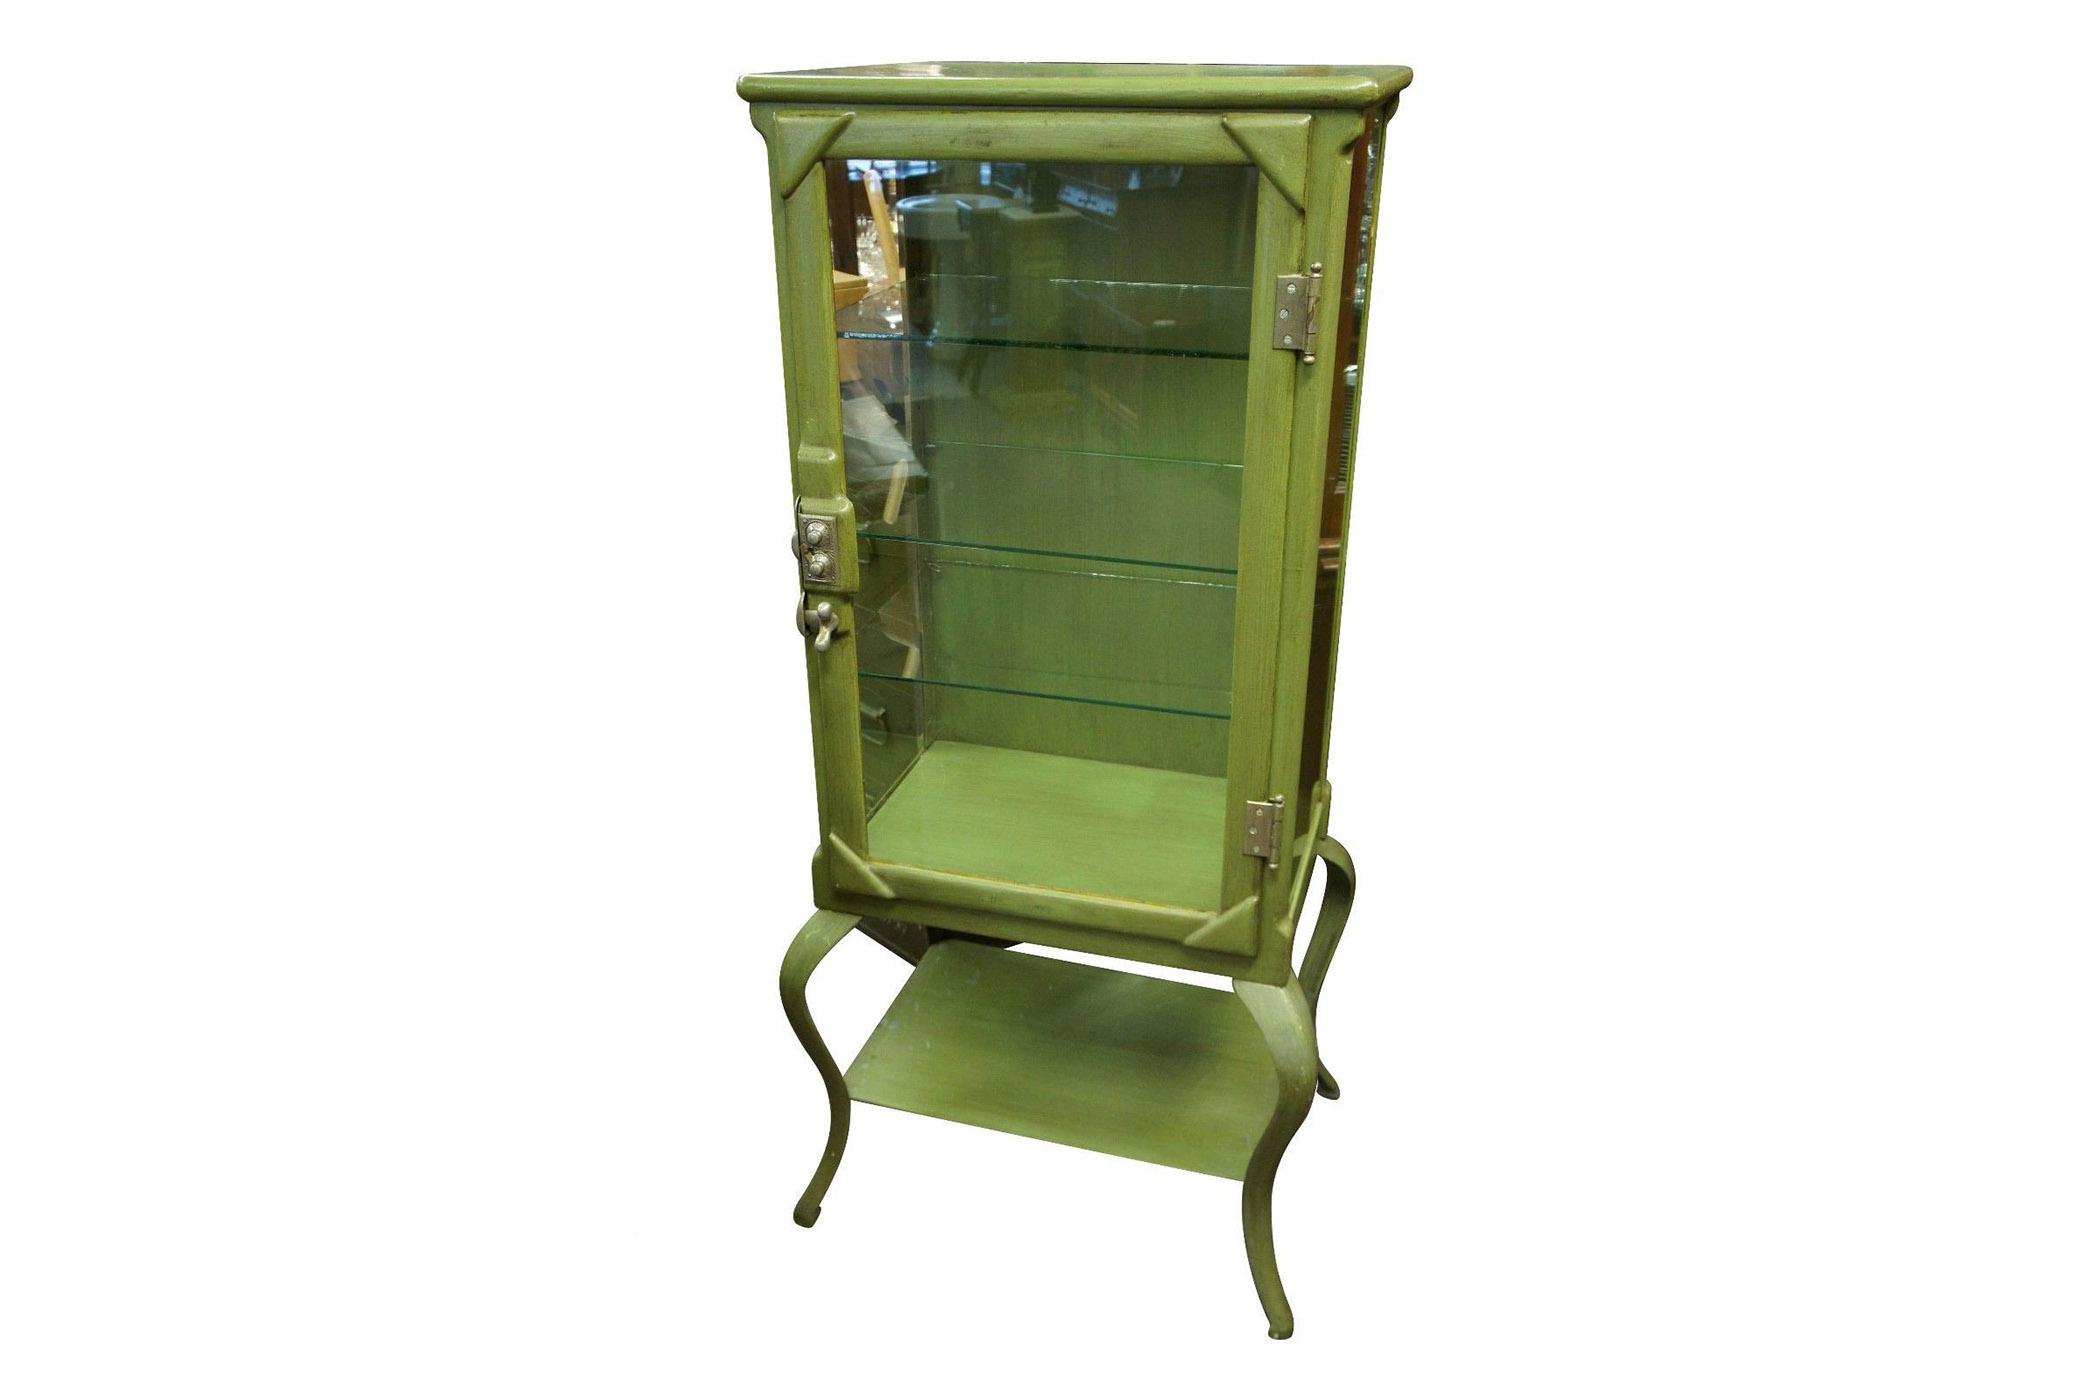 Rare Antique 19th Pharmacy Apothecary Cabinet Iron Dental Display Lock Medical Antique Medical Instruments